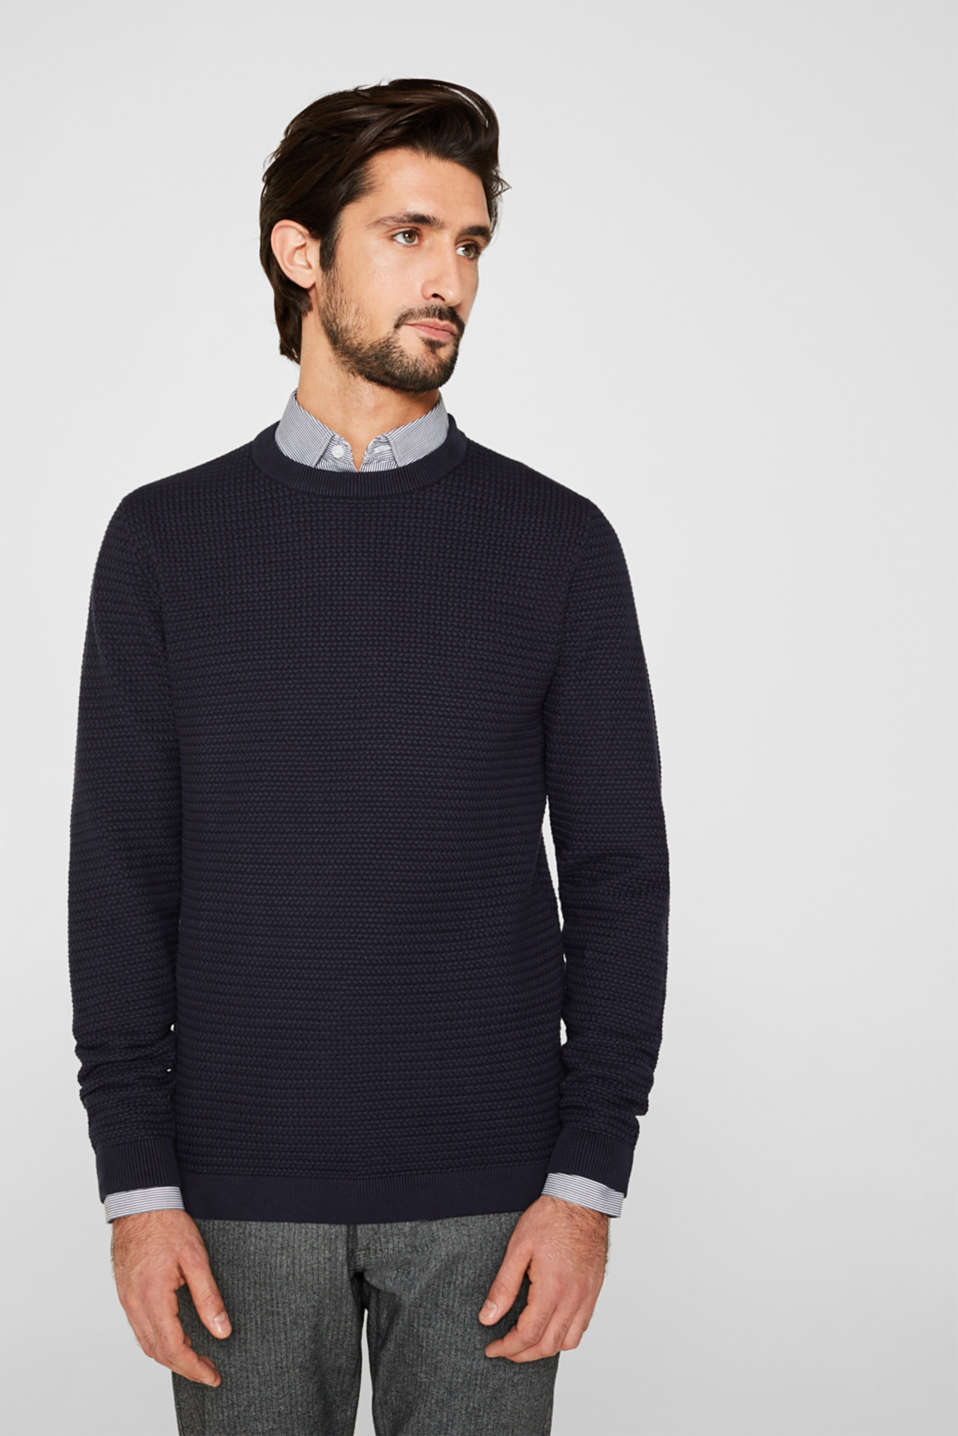 Esprit - Textured jumper made of 100% cotton